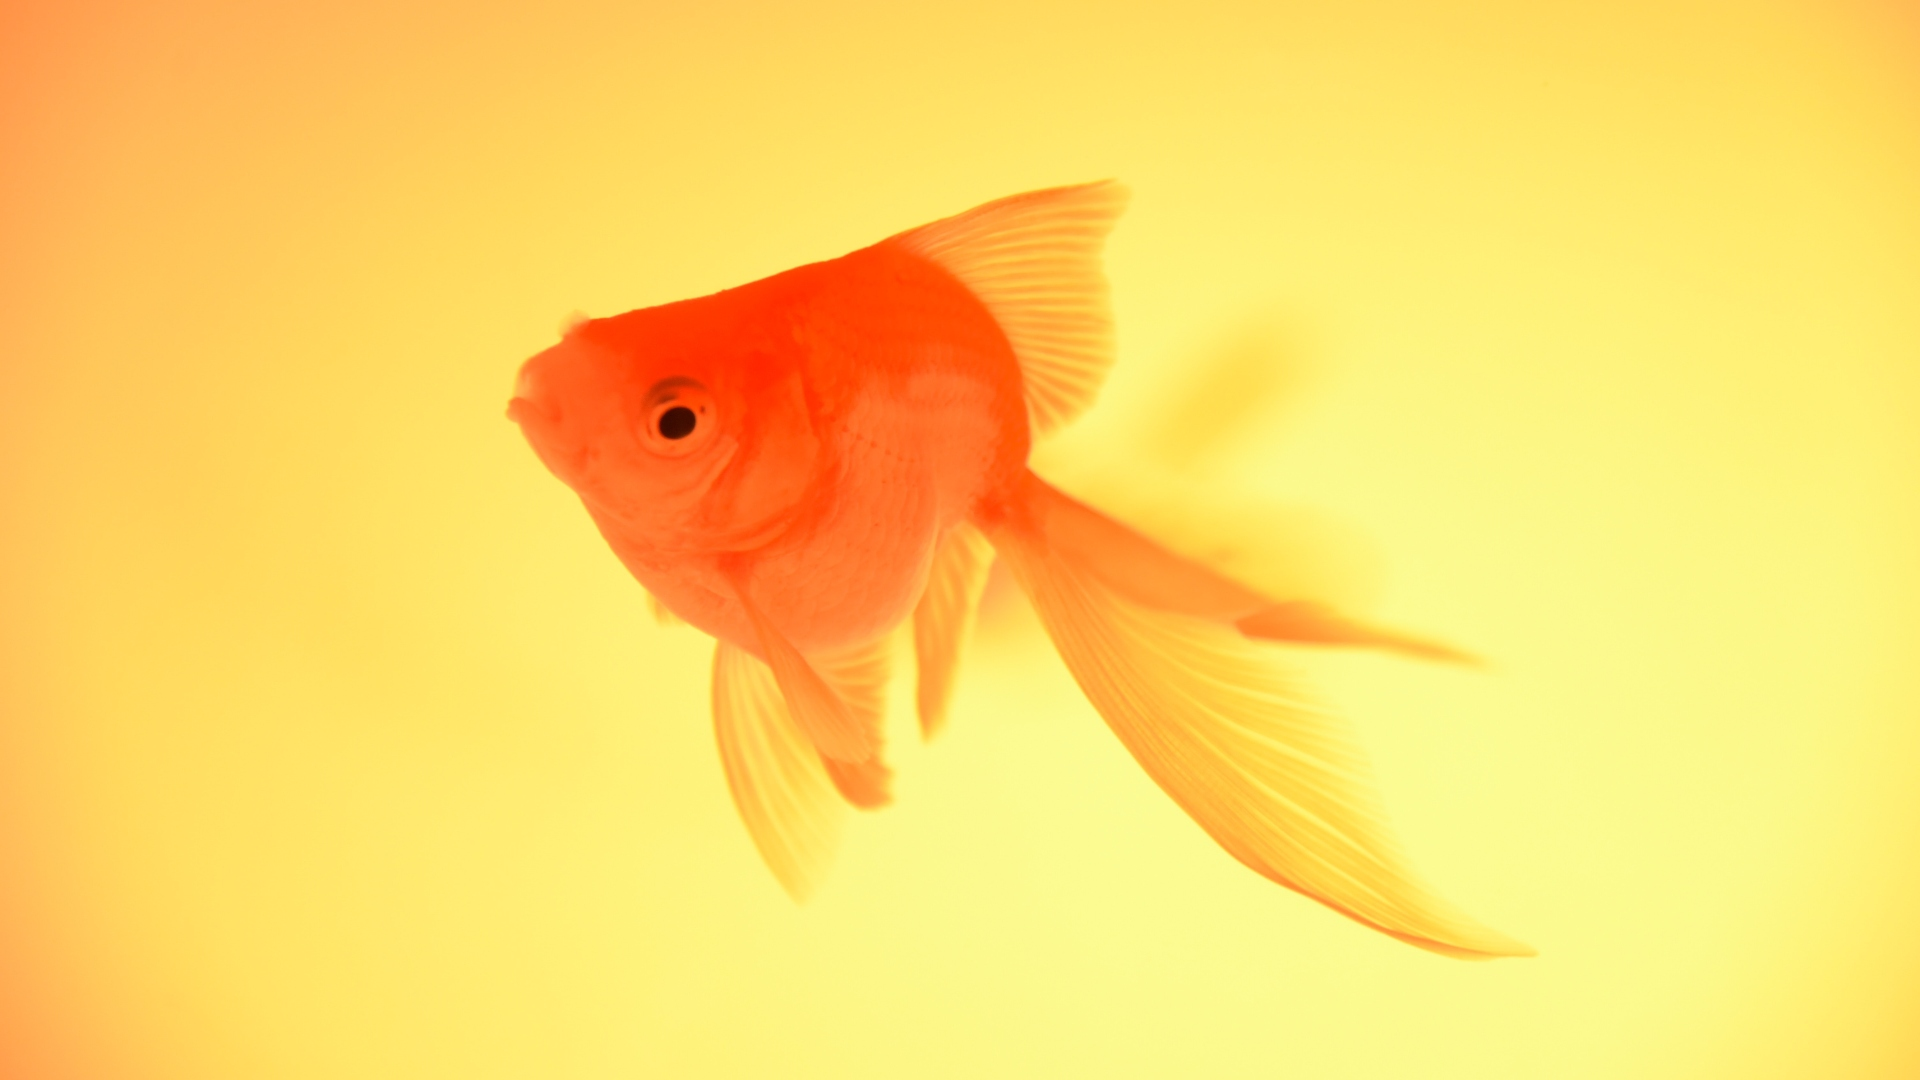 Caring For Fish 101: How To Keep Fish Successfully